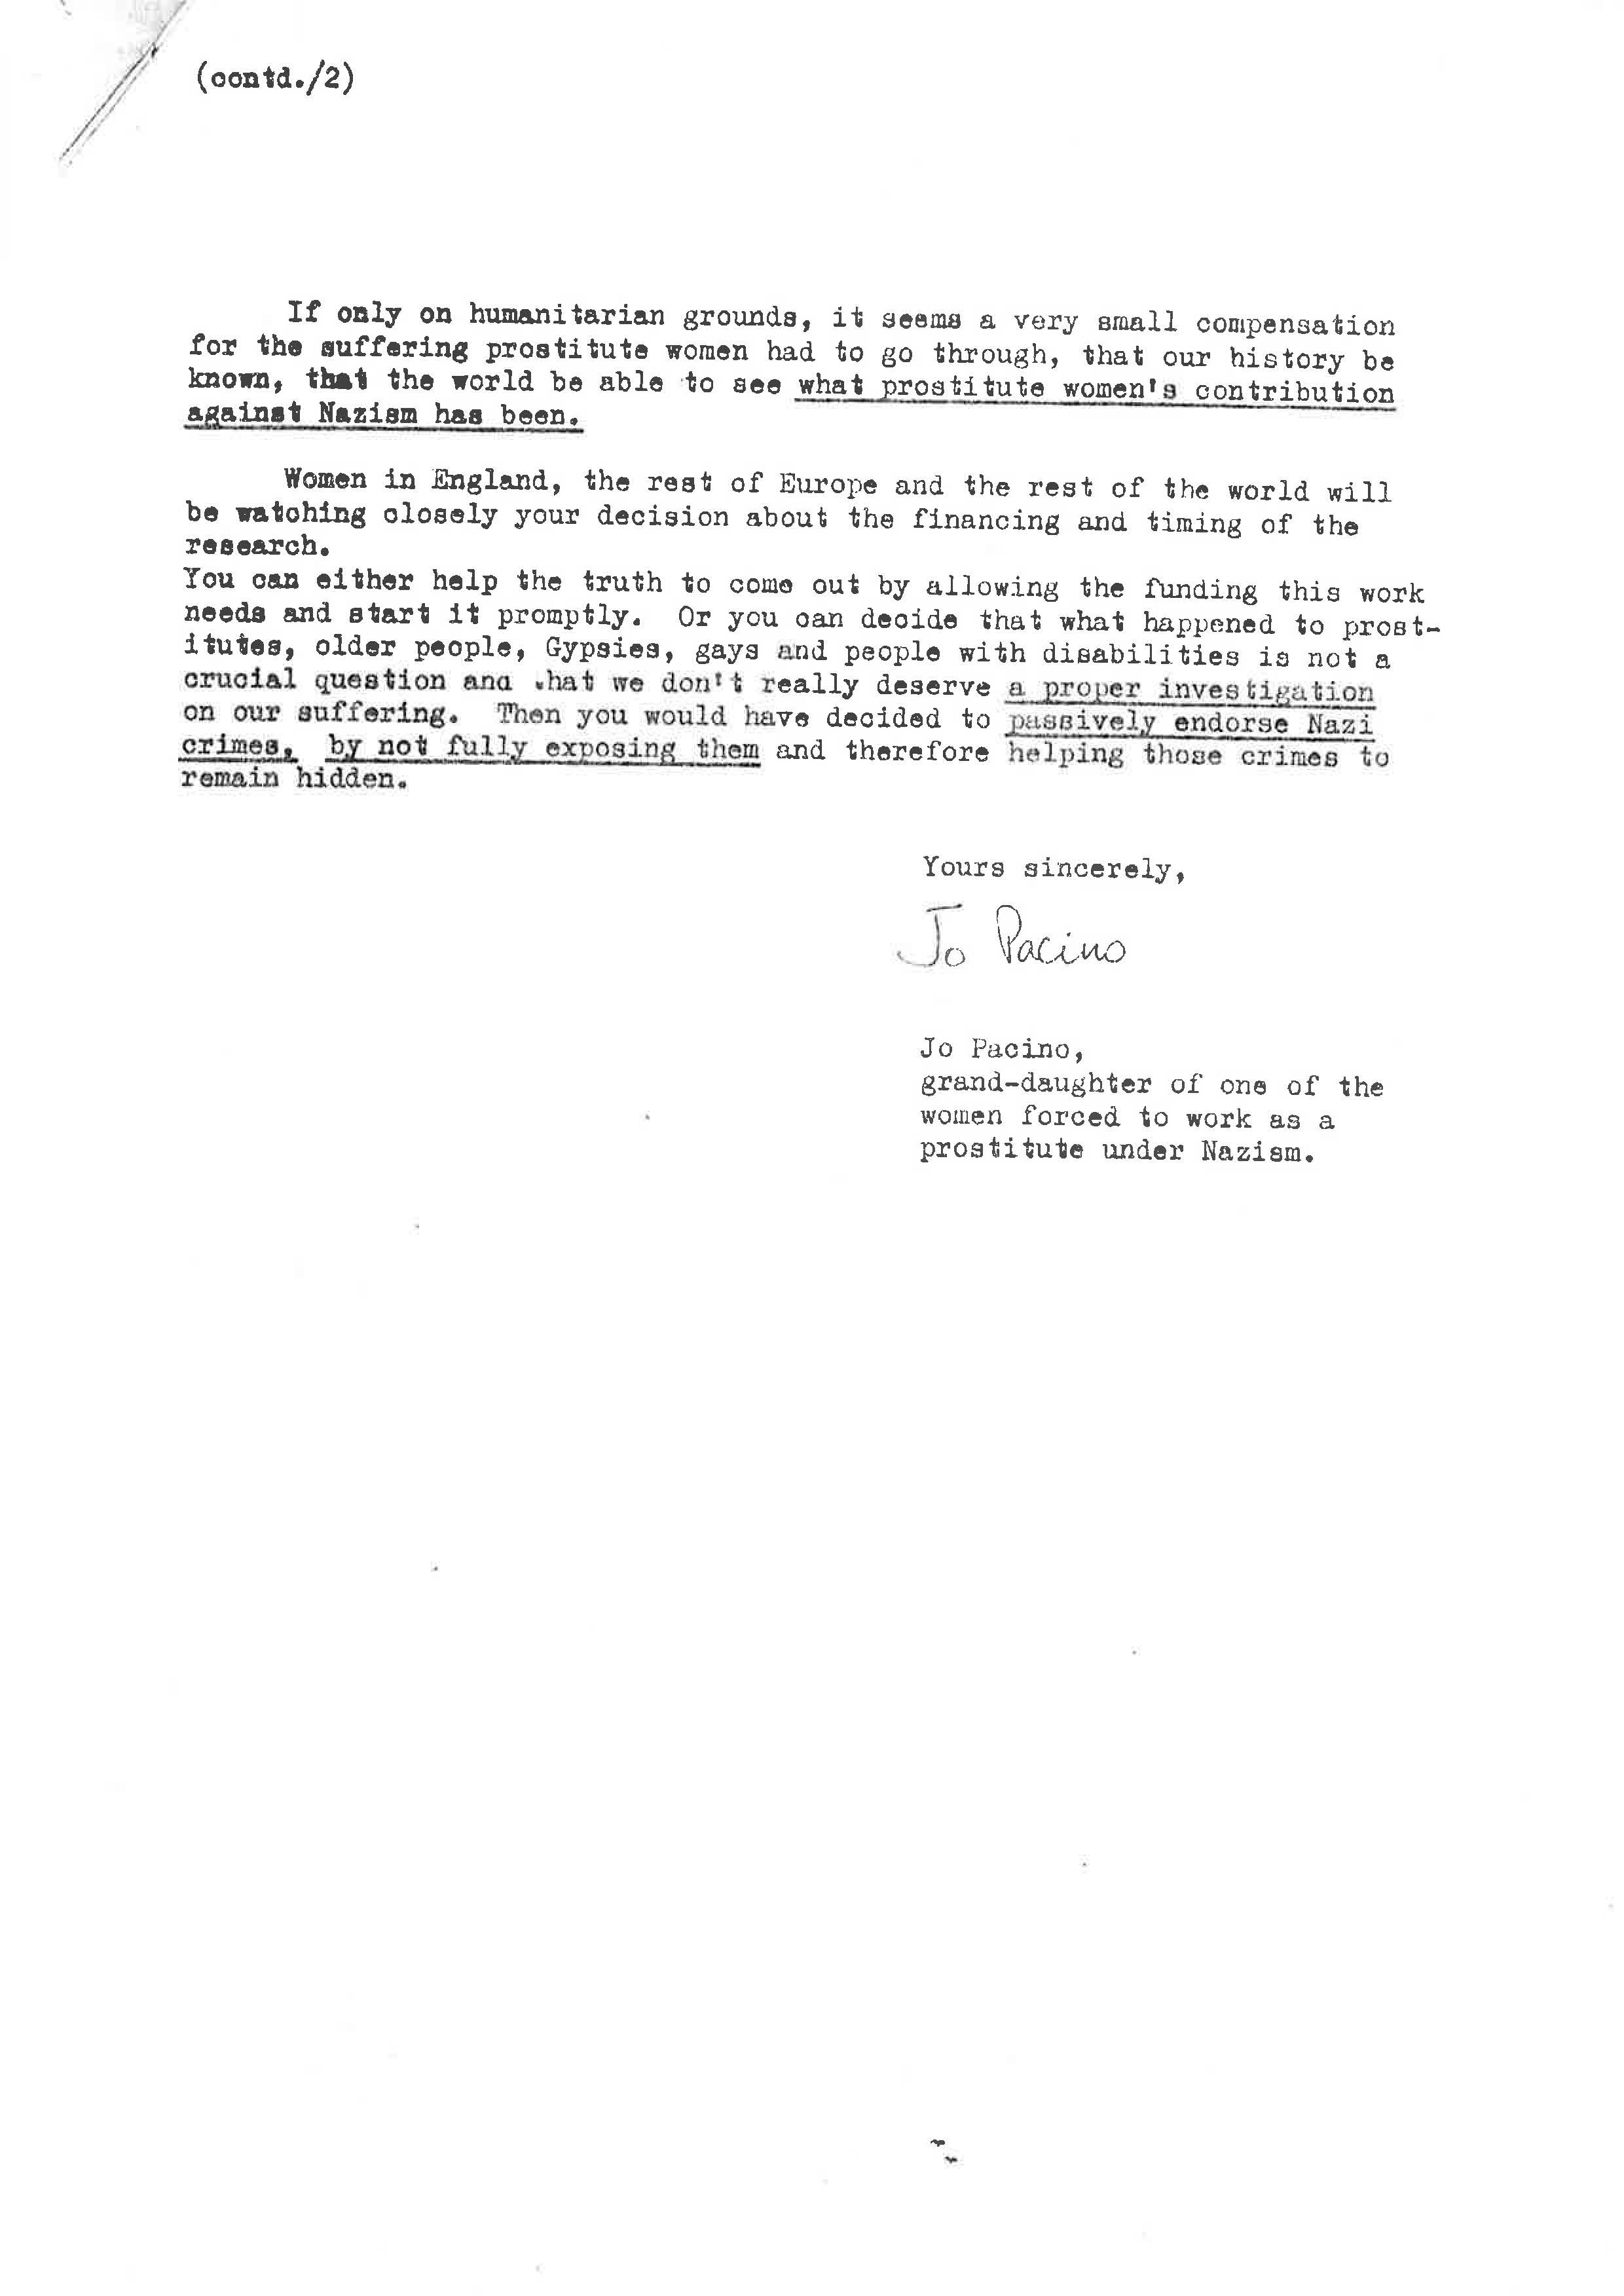 Letter from ECP to Mr Schurhardt re records on prostitute women under Nazism_Page_2